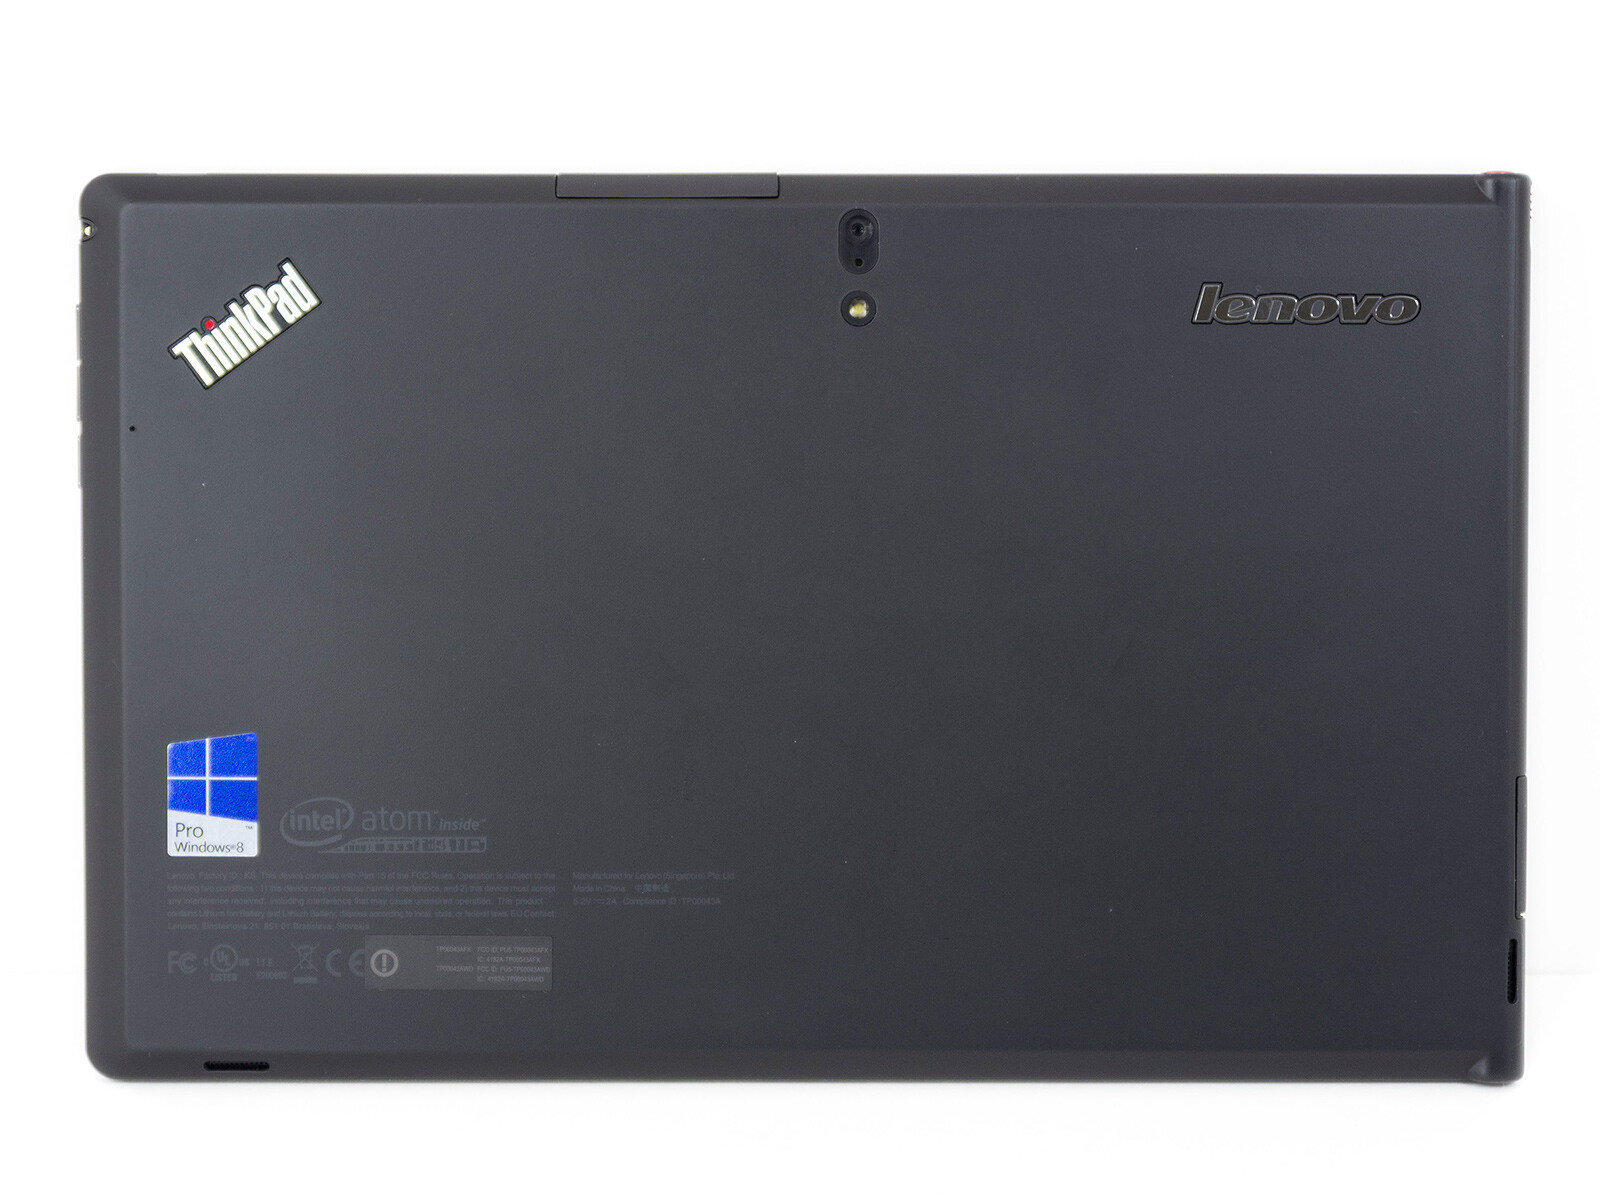 Lenovo Thinkpad Tablet 2 Specs